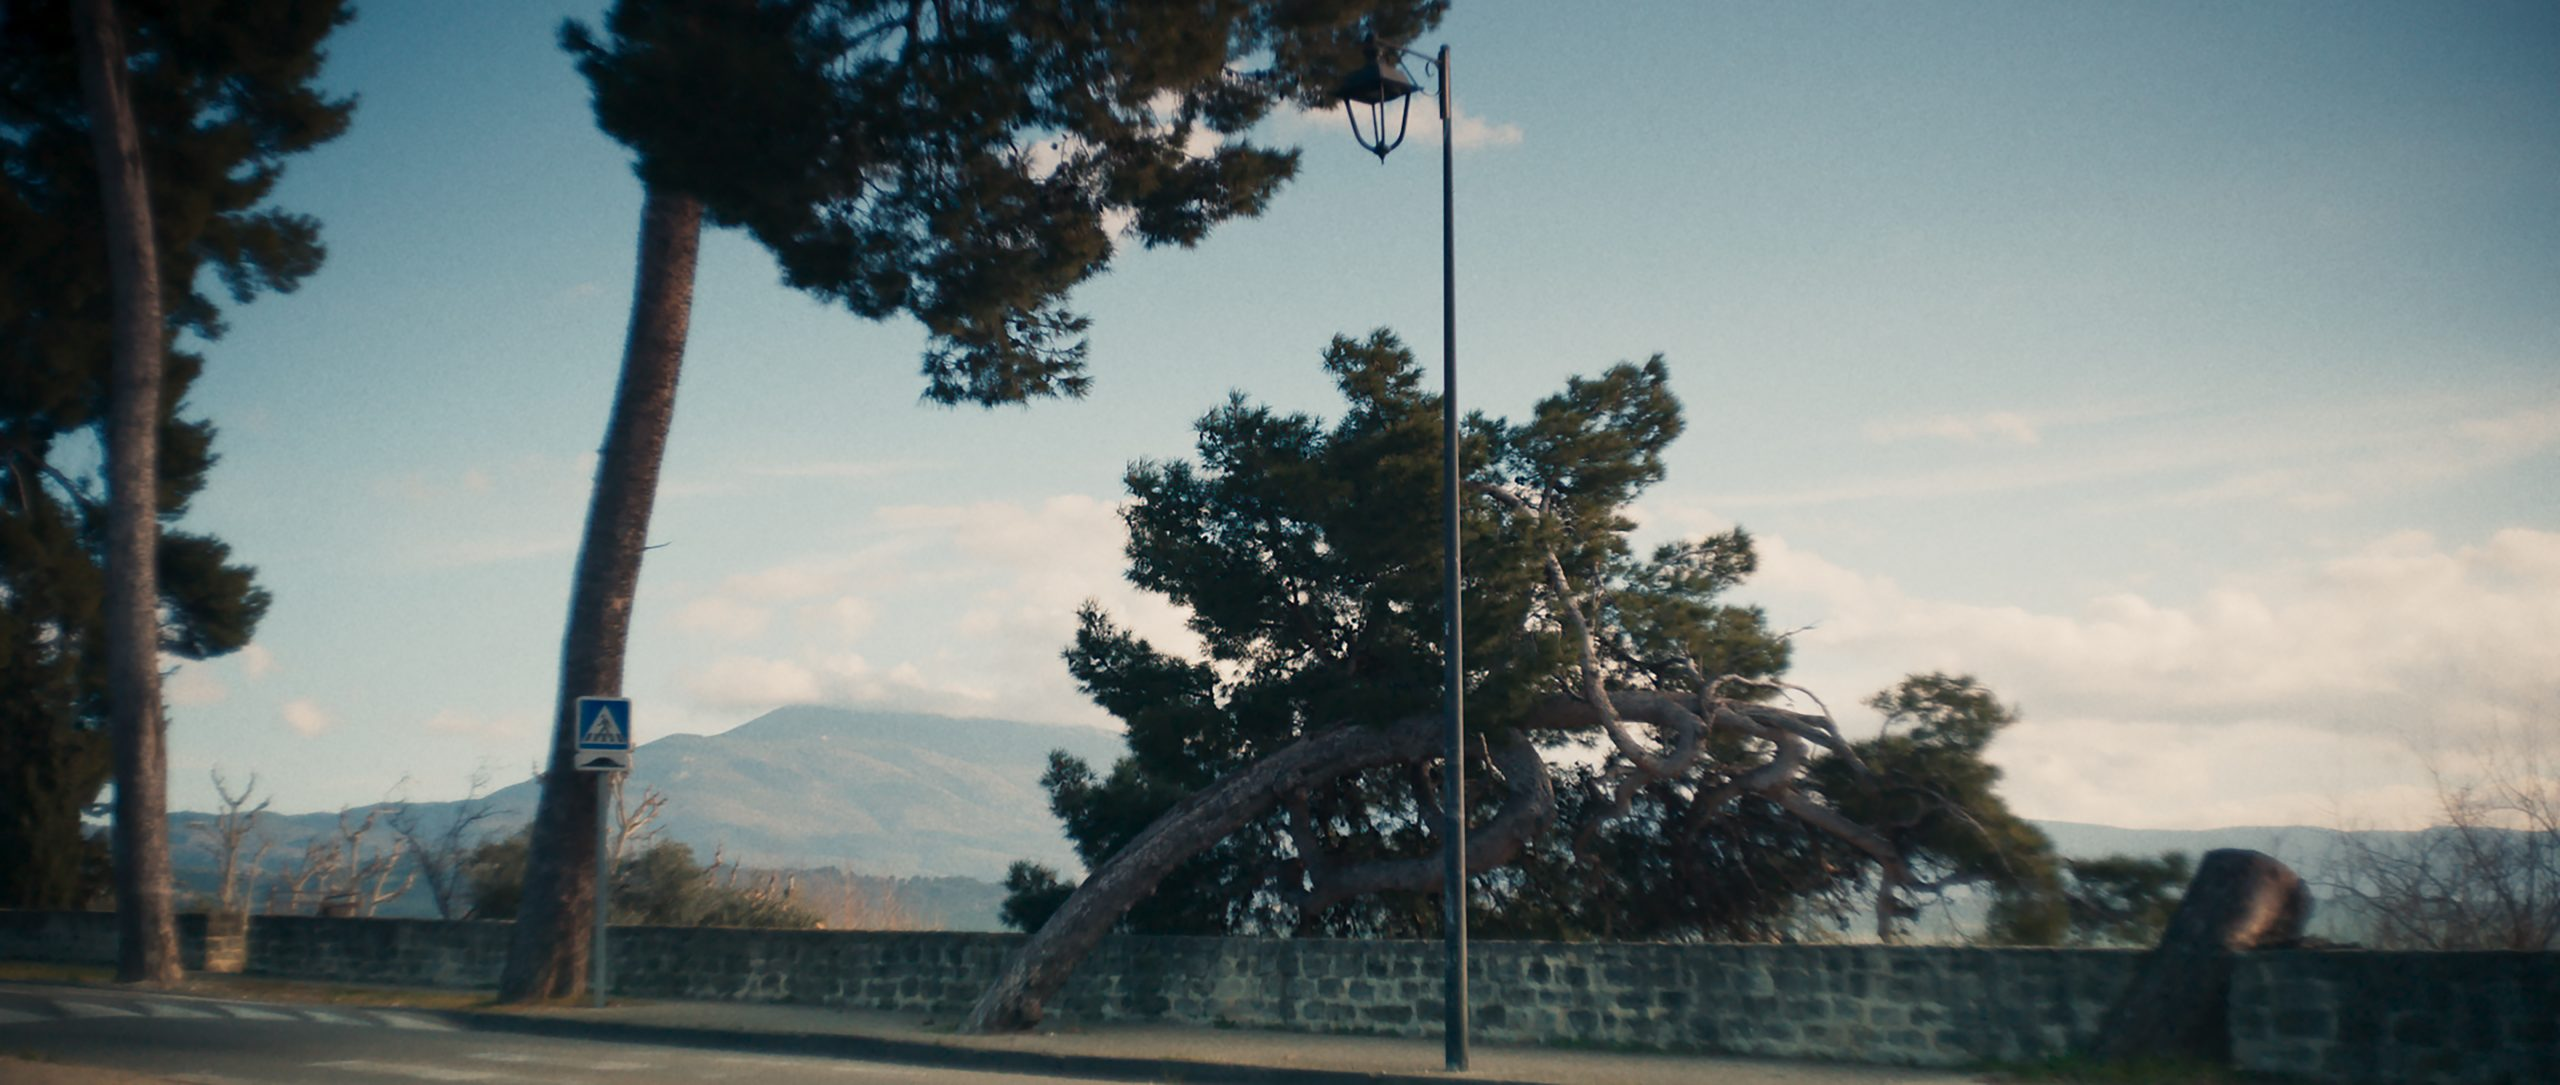 Still from the film Un Chanteur Invisible. It's a shot of trees bended by the wind.